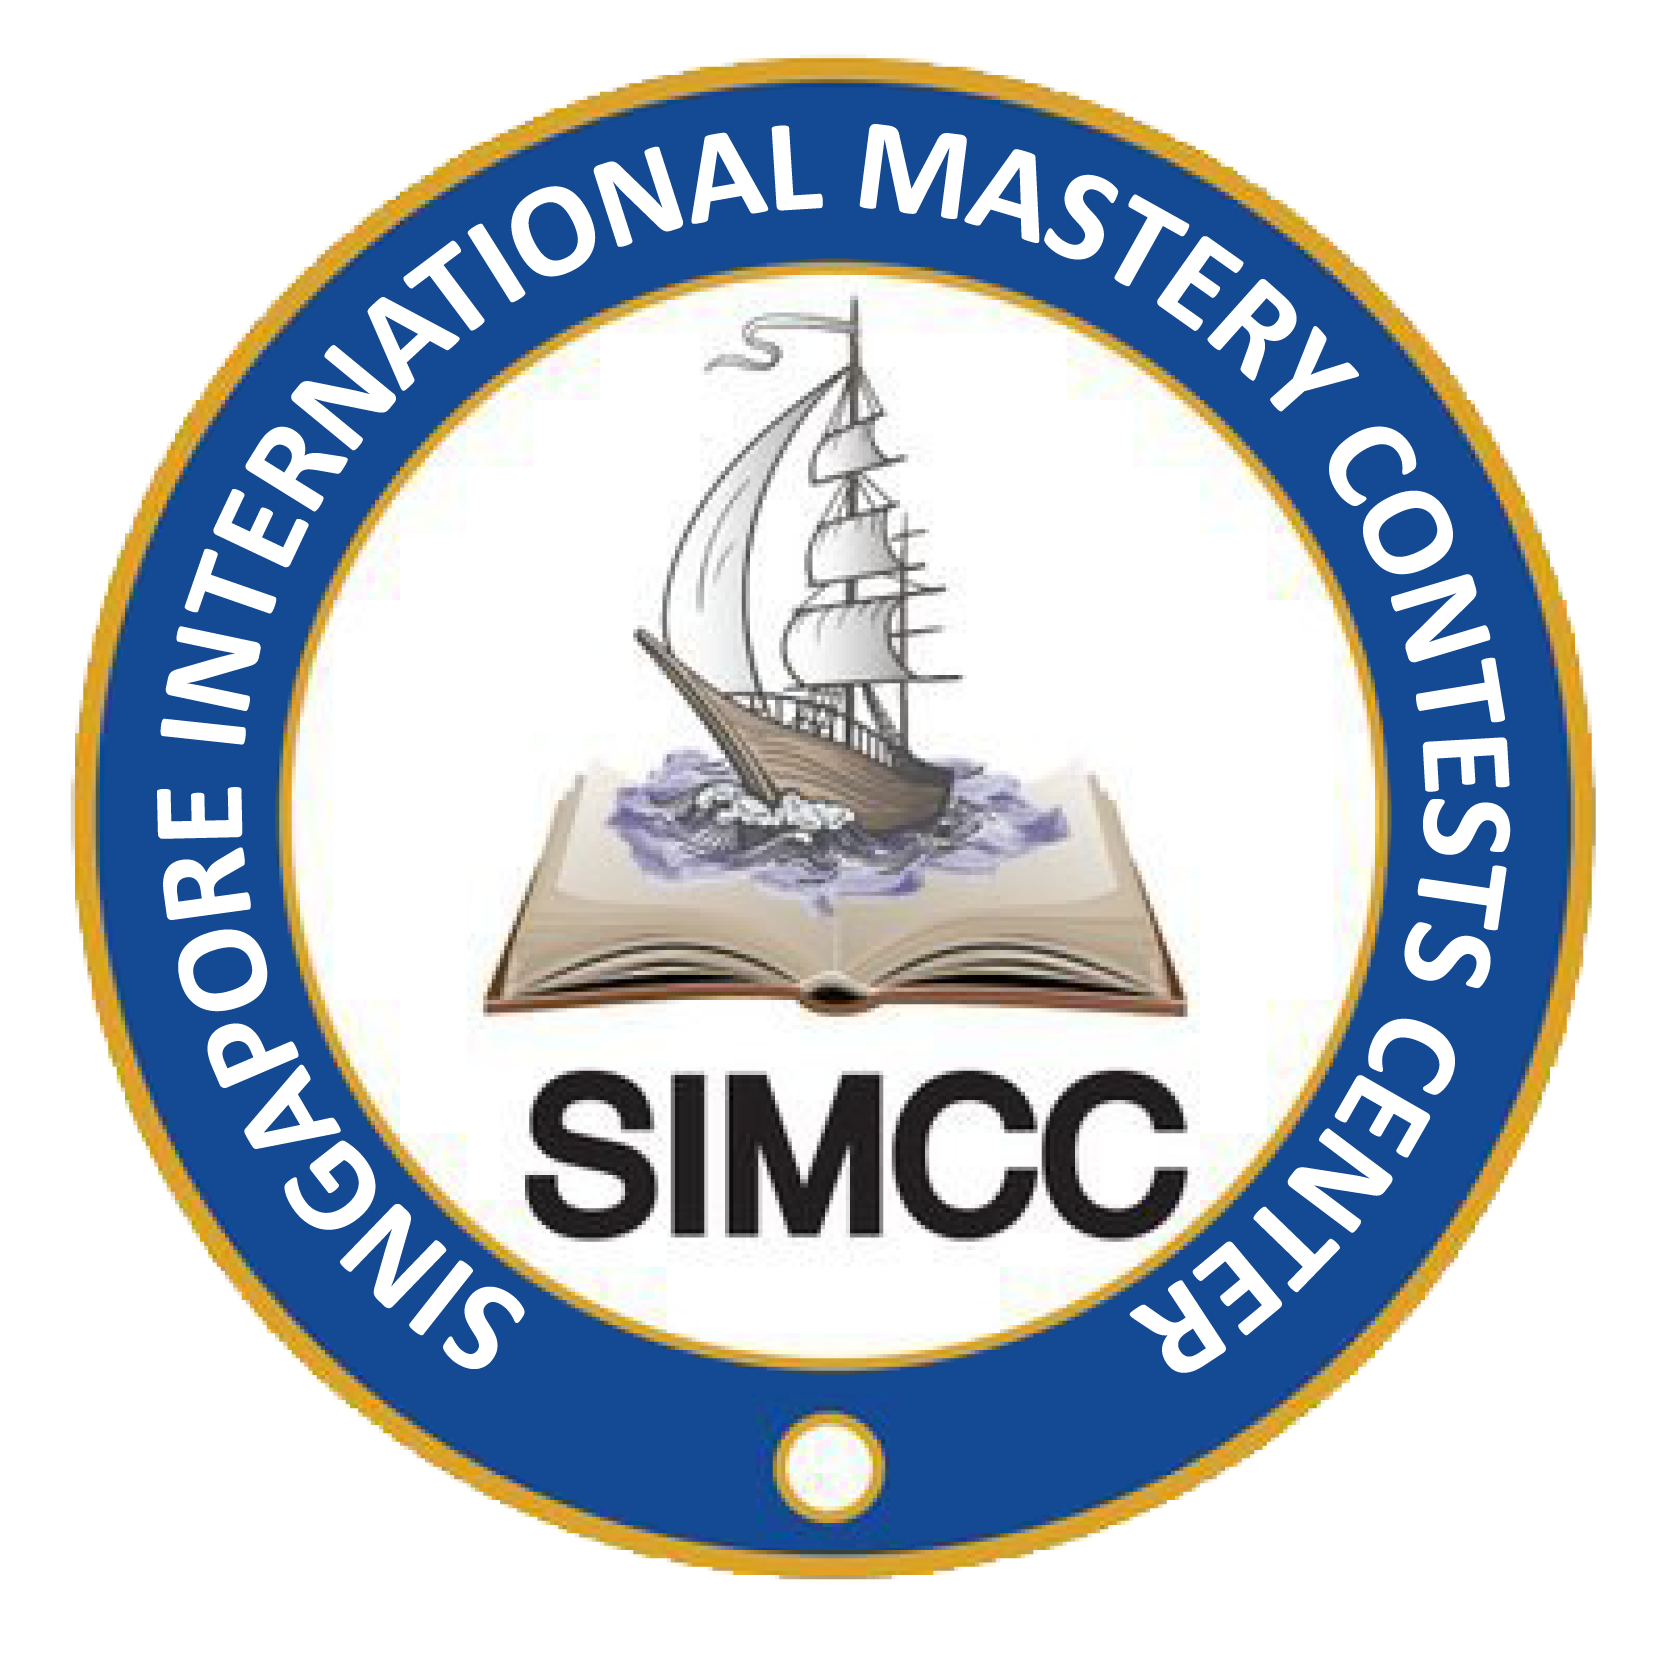 Singapore International Mastery Contests Center